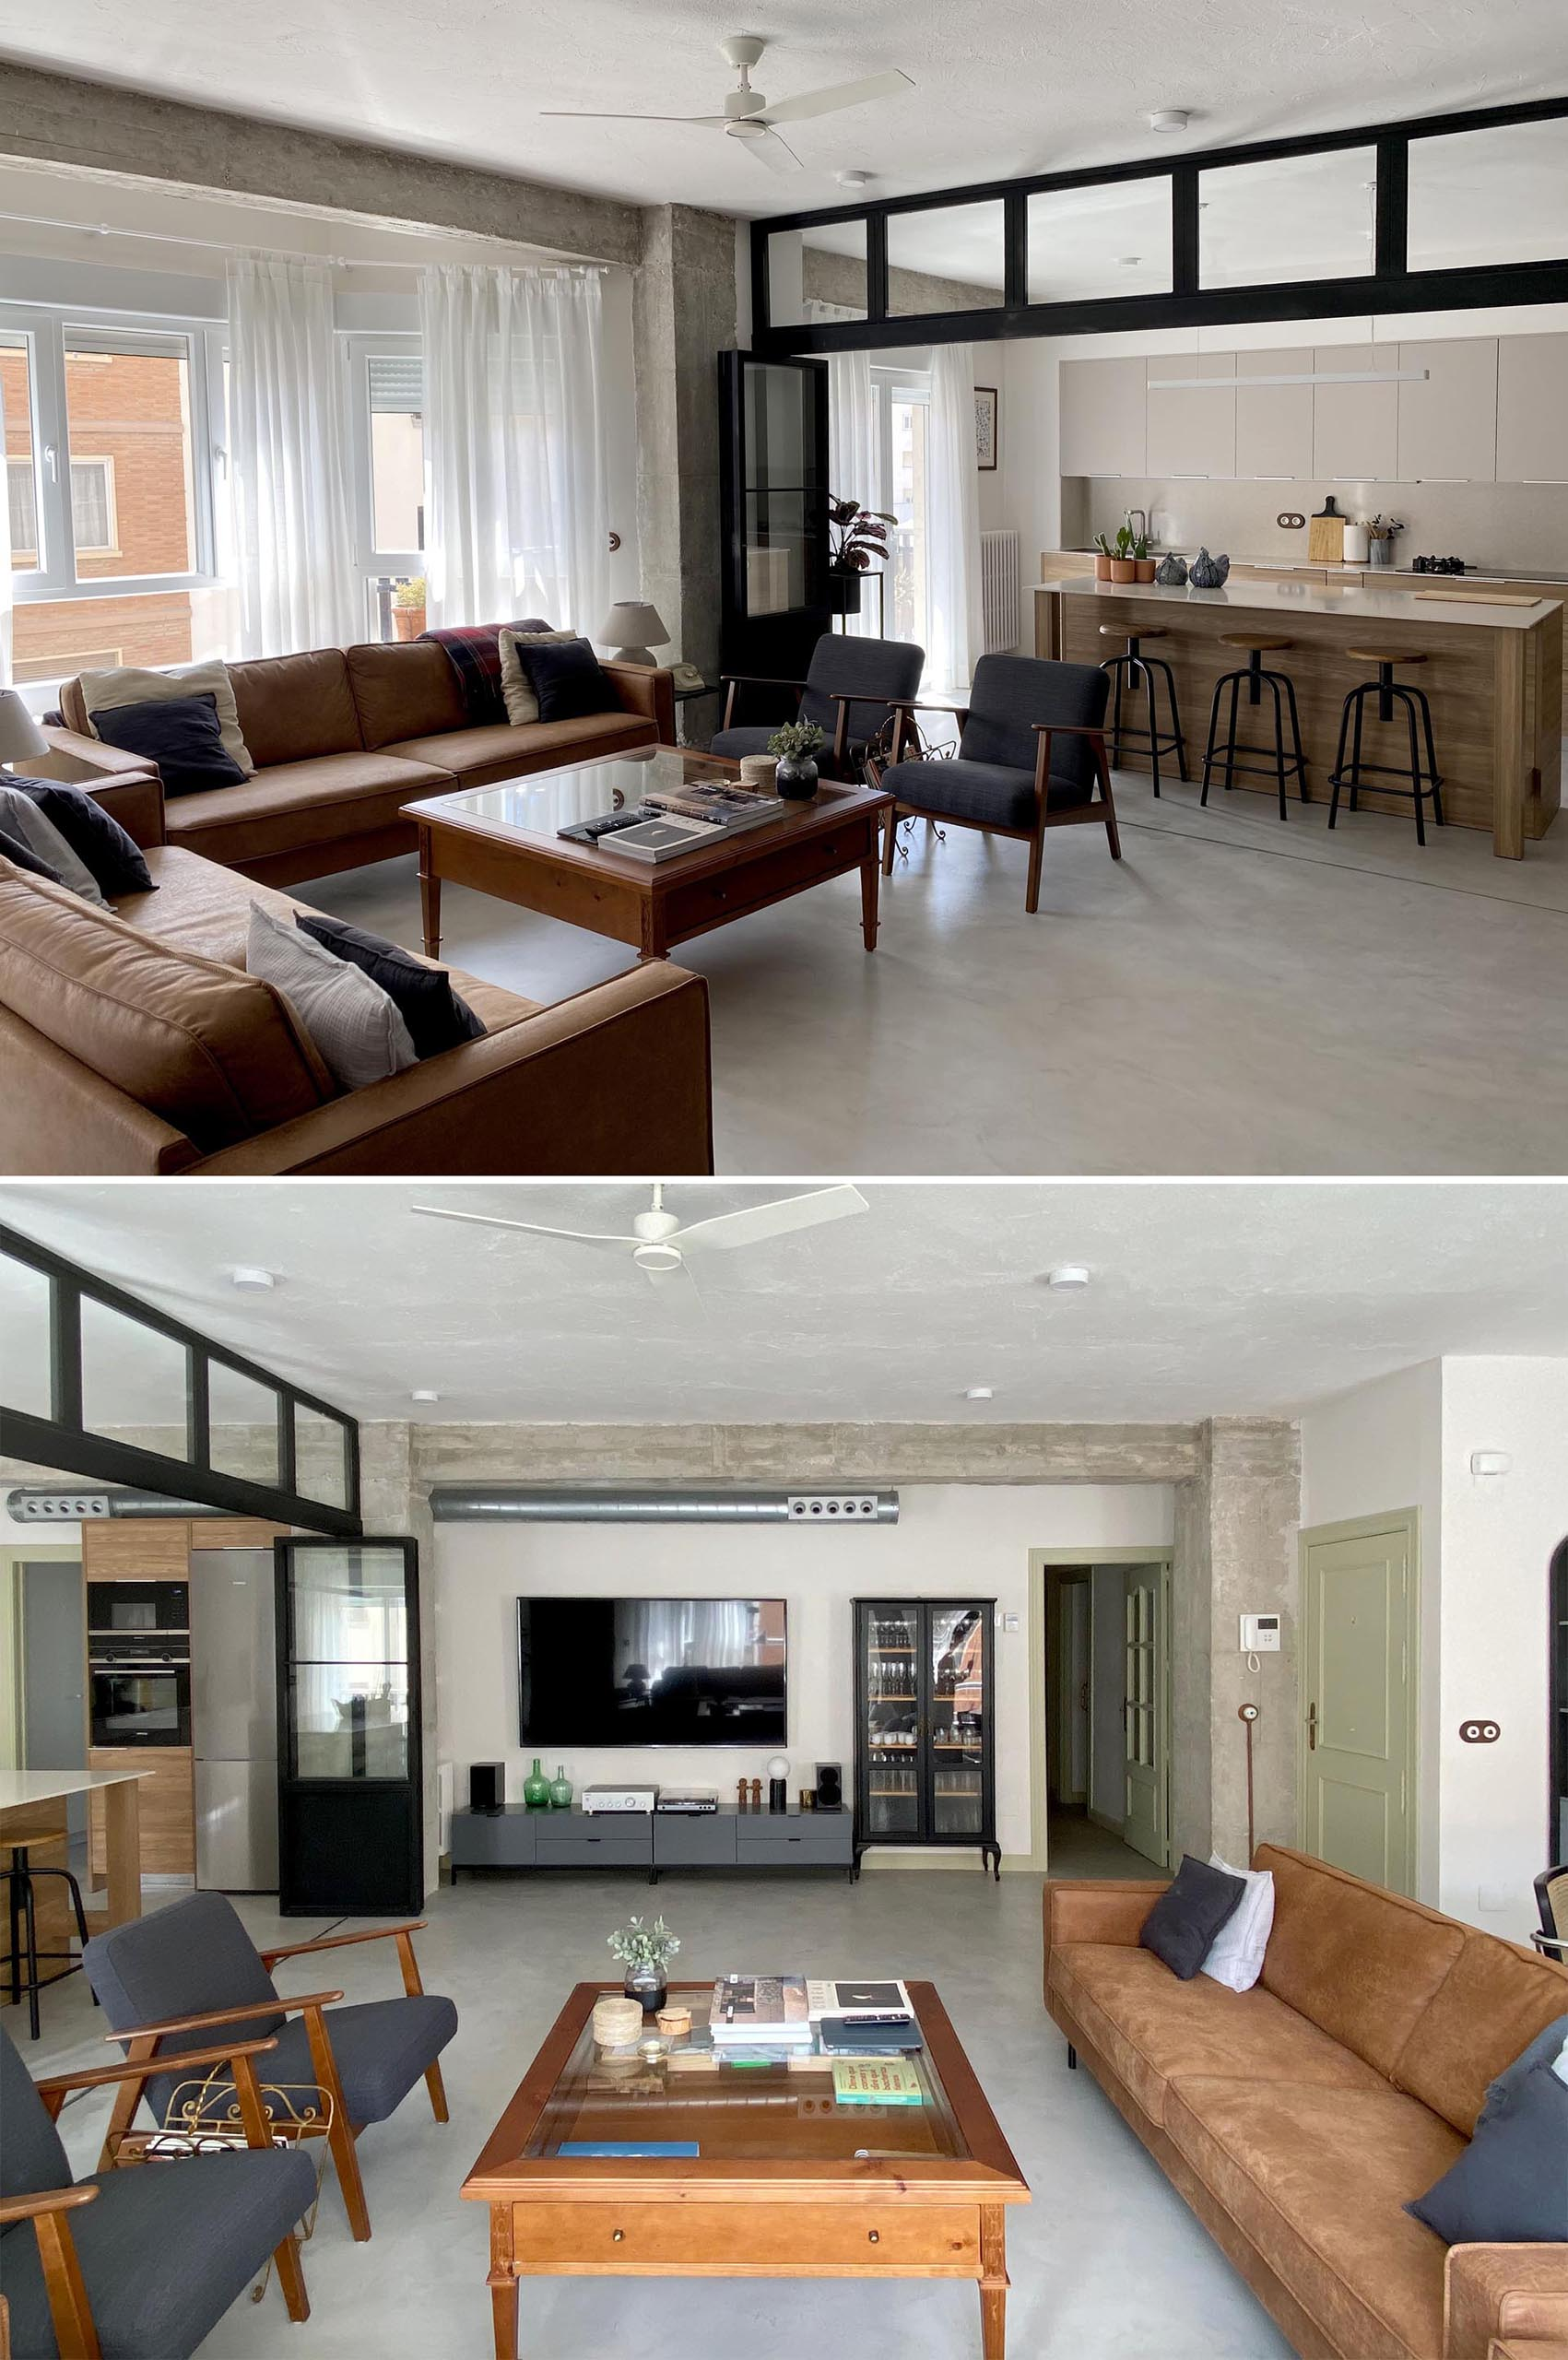 This modern living room showcases the concrete flooring, and is furnished with leather couches, a pair of armchairs, and a wood coffee table. On the living room wall, there's a low console and glass front cabinet that complements the black framed doors.